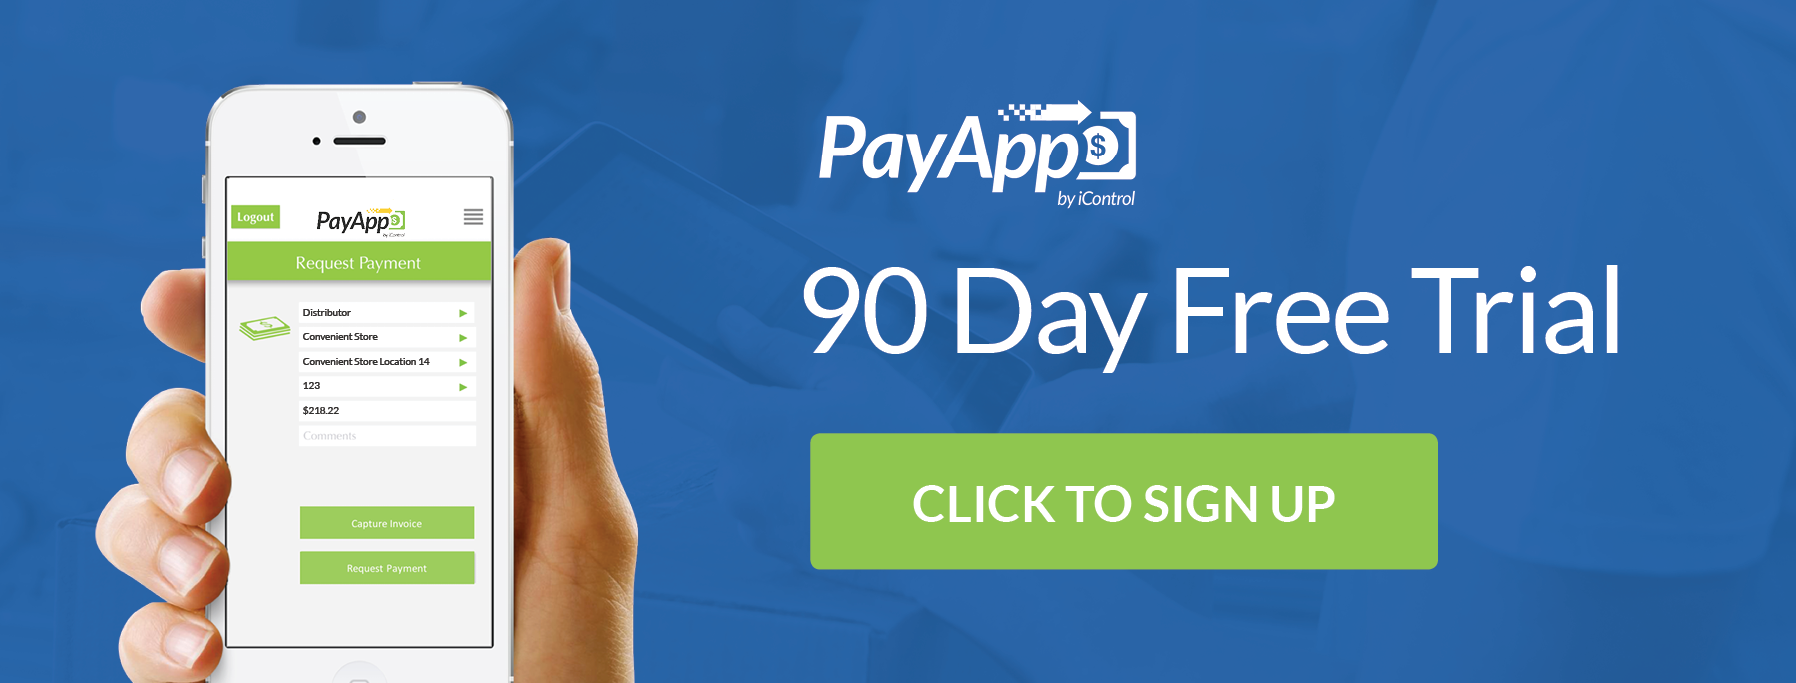 PayApp by iControl 90-Day Free Trial